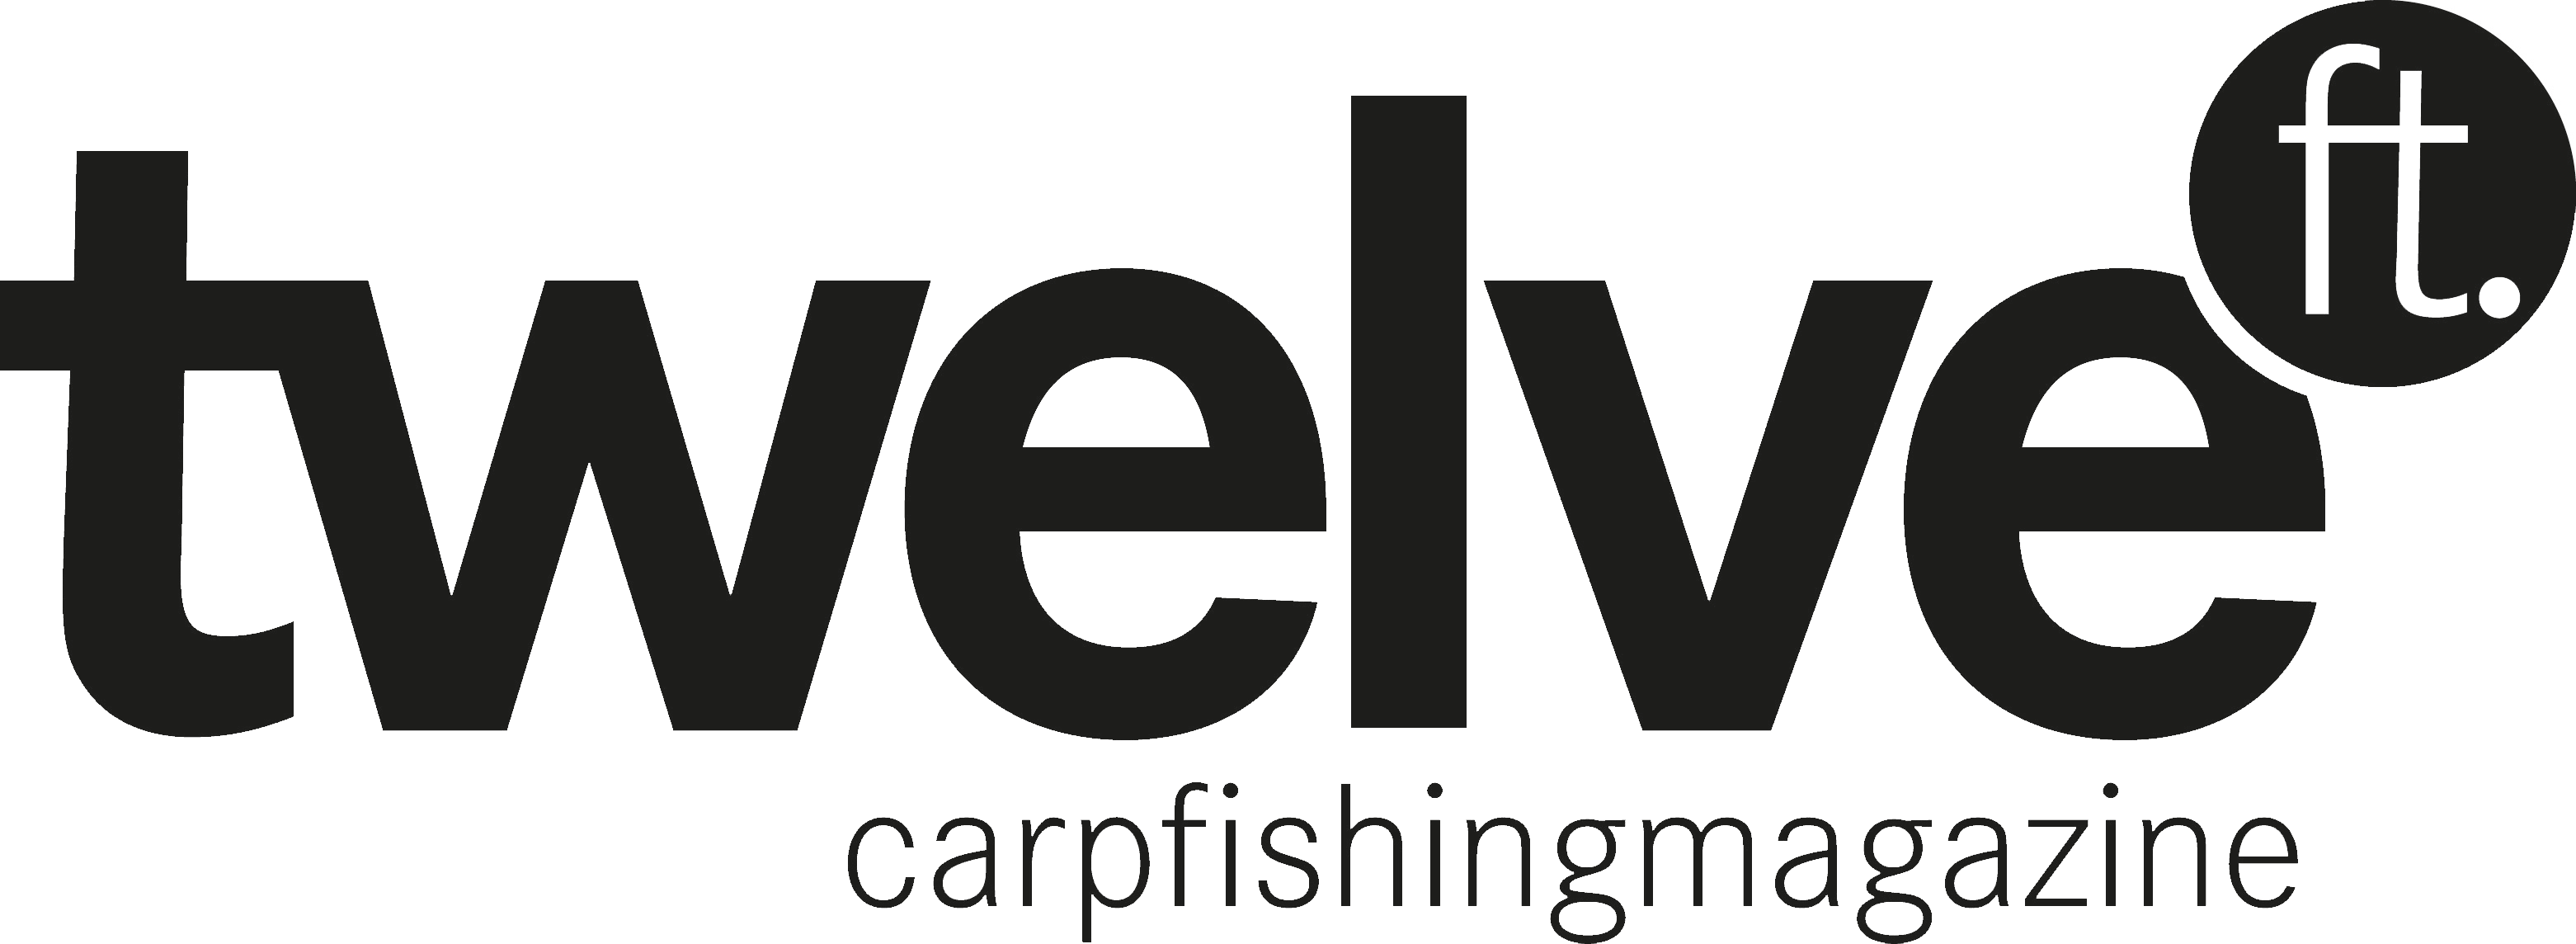 twelve ft. carpfishingmagazine